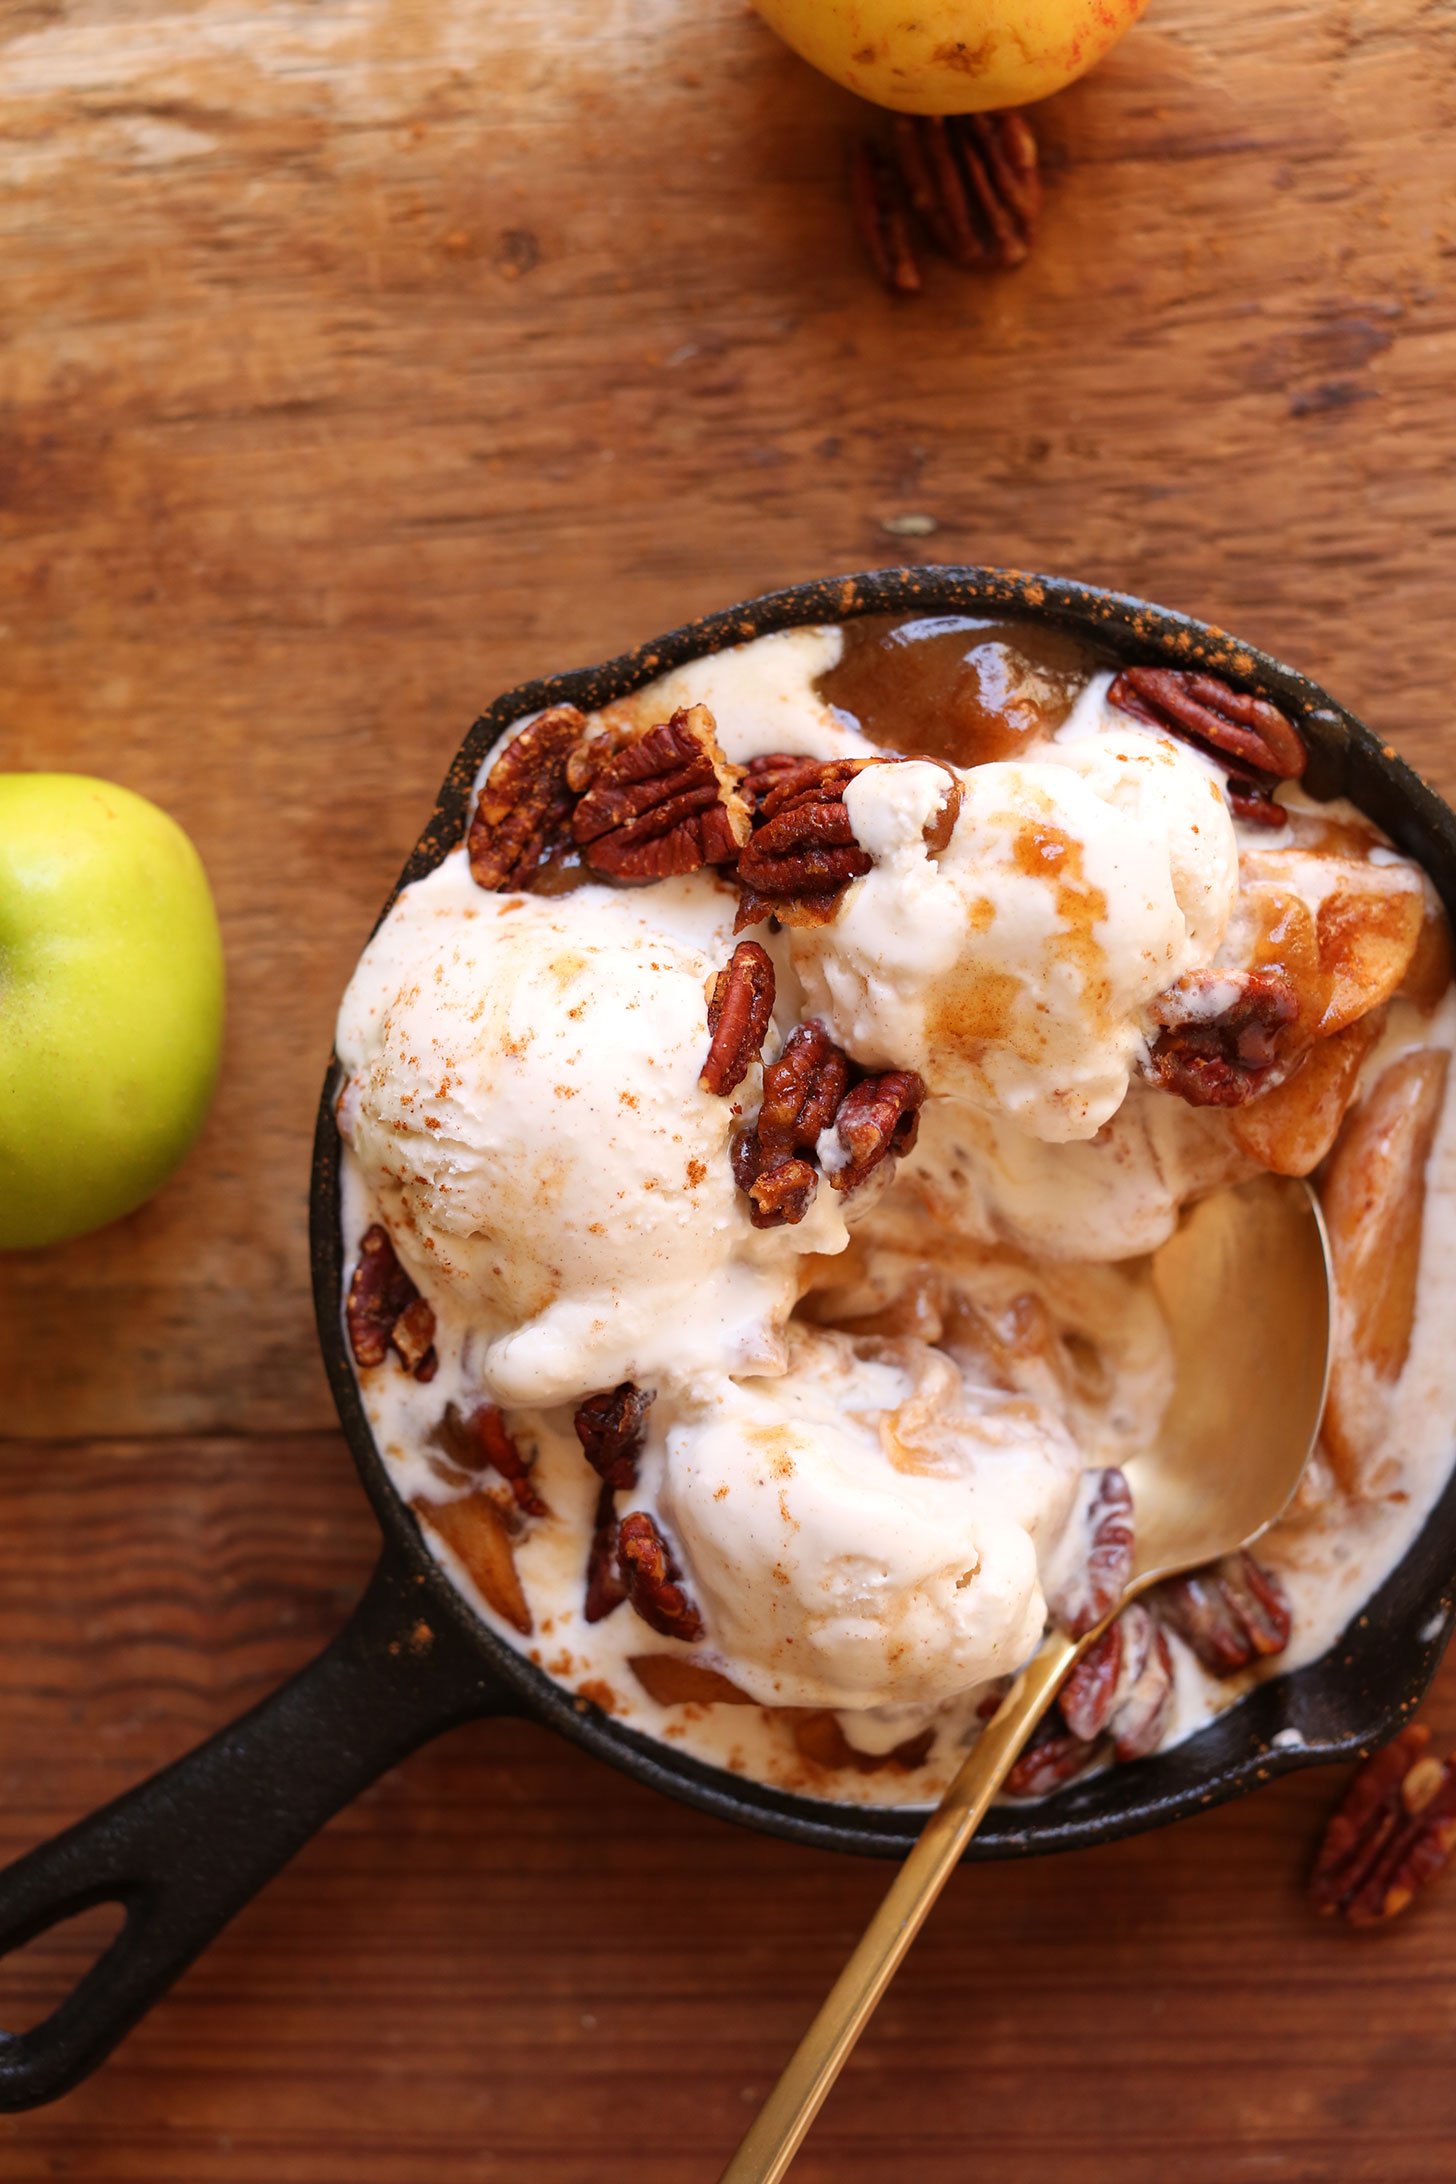 Mini cast-iron skillet with our naturally-sweetened vegan apple pie sundae recipe